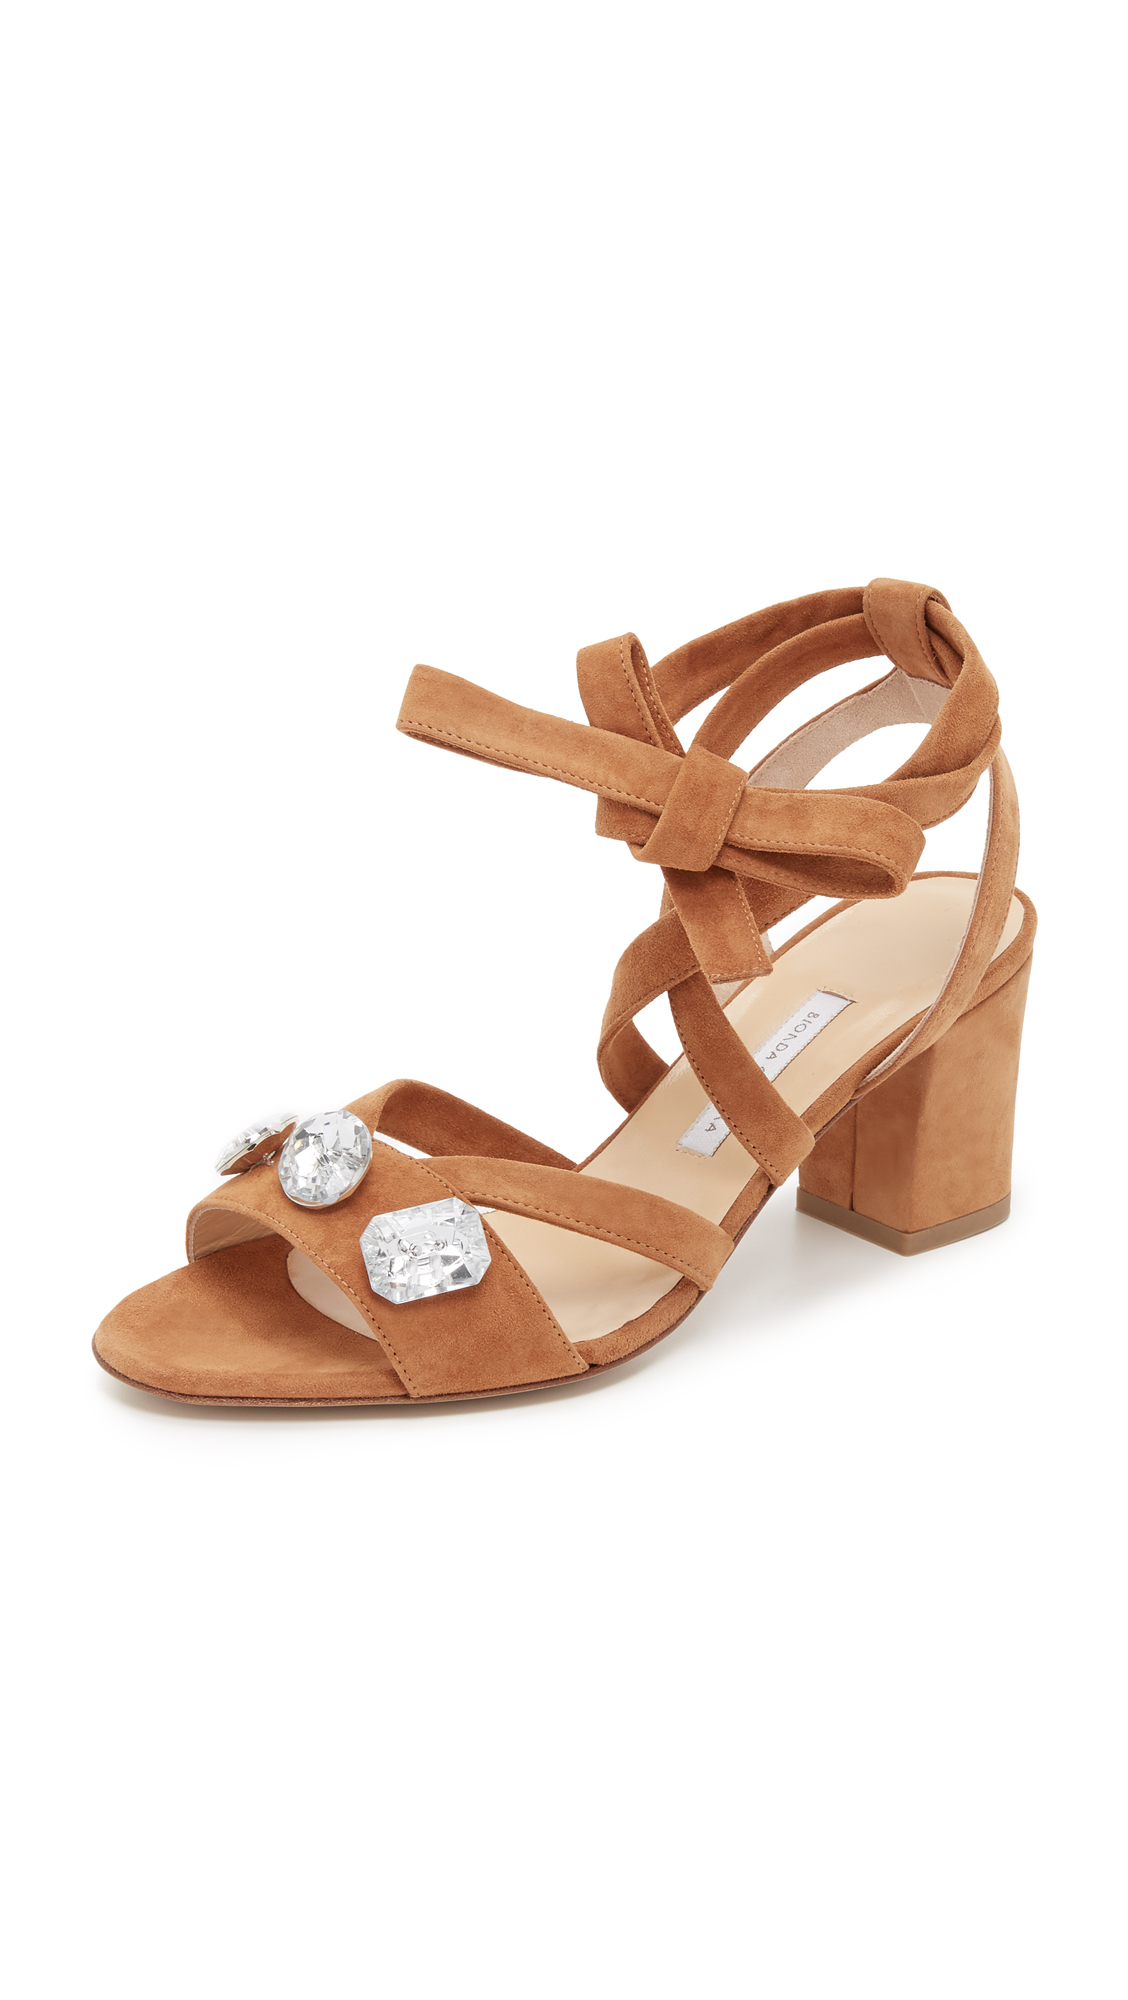 aa84ace72b4ea Lyst - Bionda Castana Ruby City Sandals in Natural